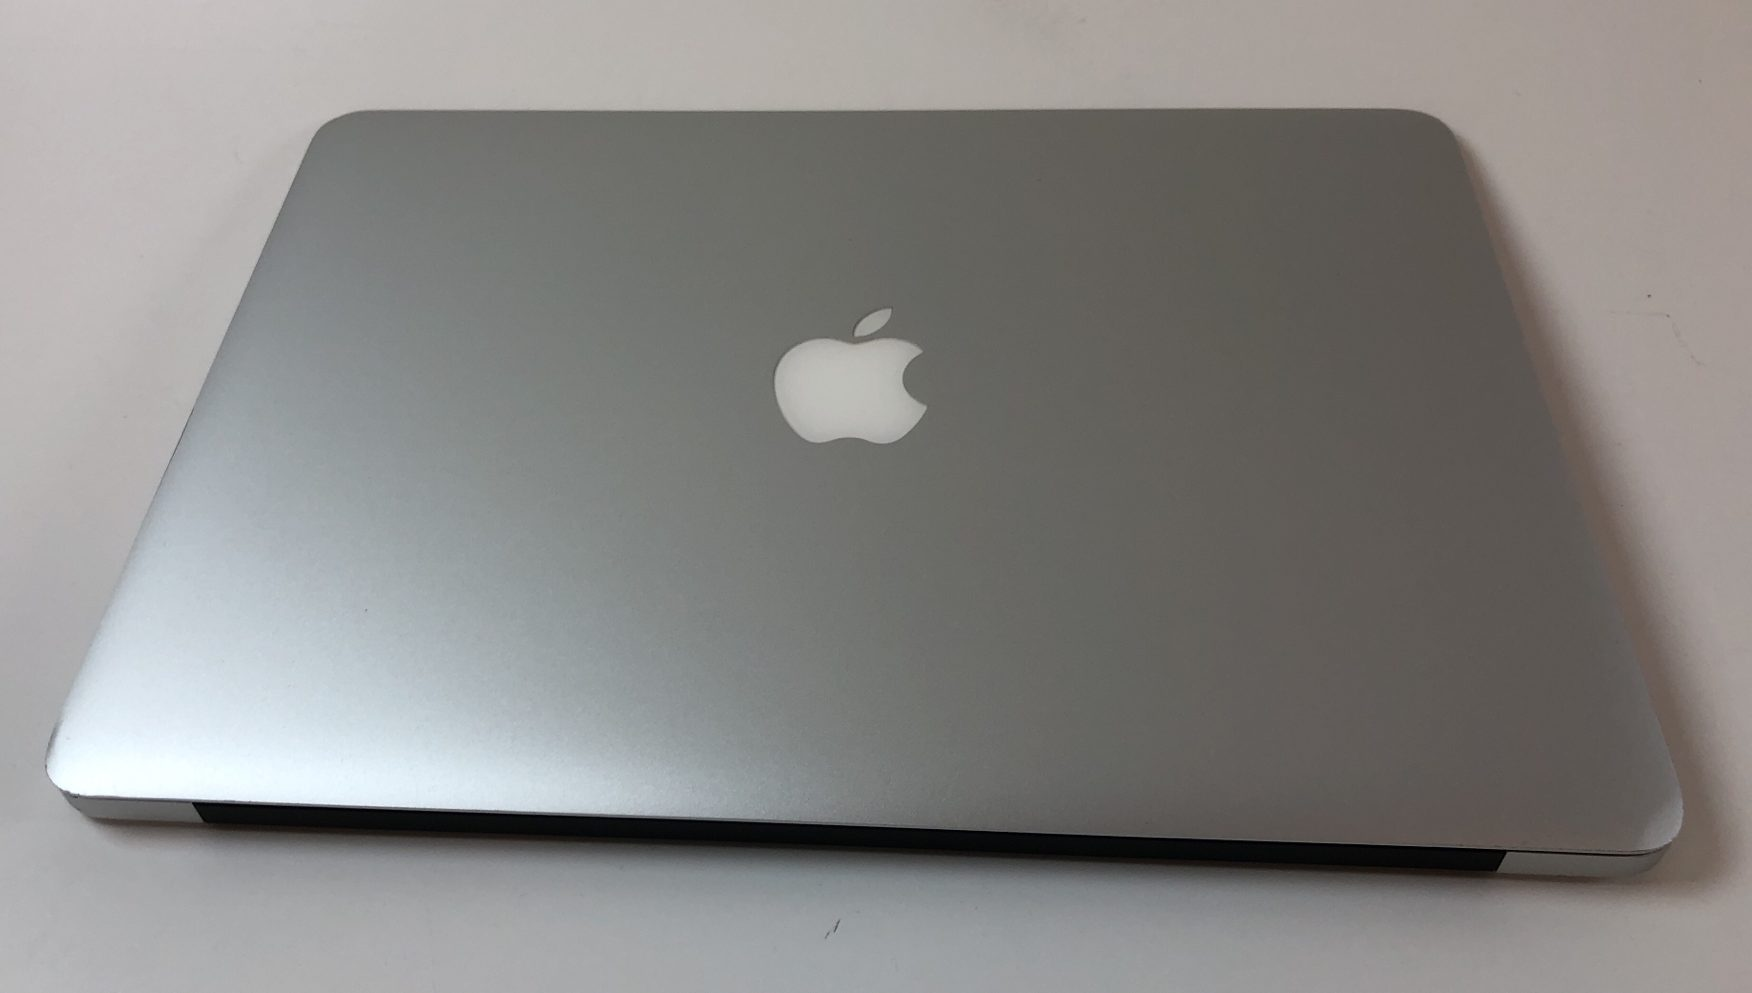 "MacBook Air 13"" Mid 2013 (Intel Core i5 1.3 GHz 4 GB RAM 128 GB SSD), Intel Core i5 1.3 GHz, 4 GB RAM, 128 GB SSD, Kuva 2"